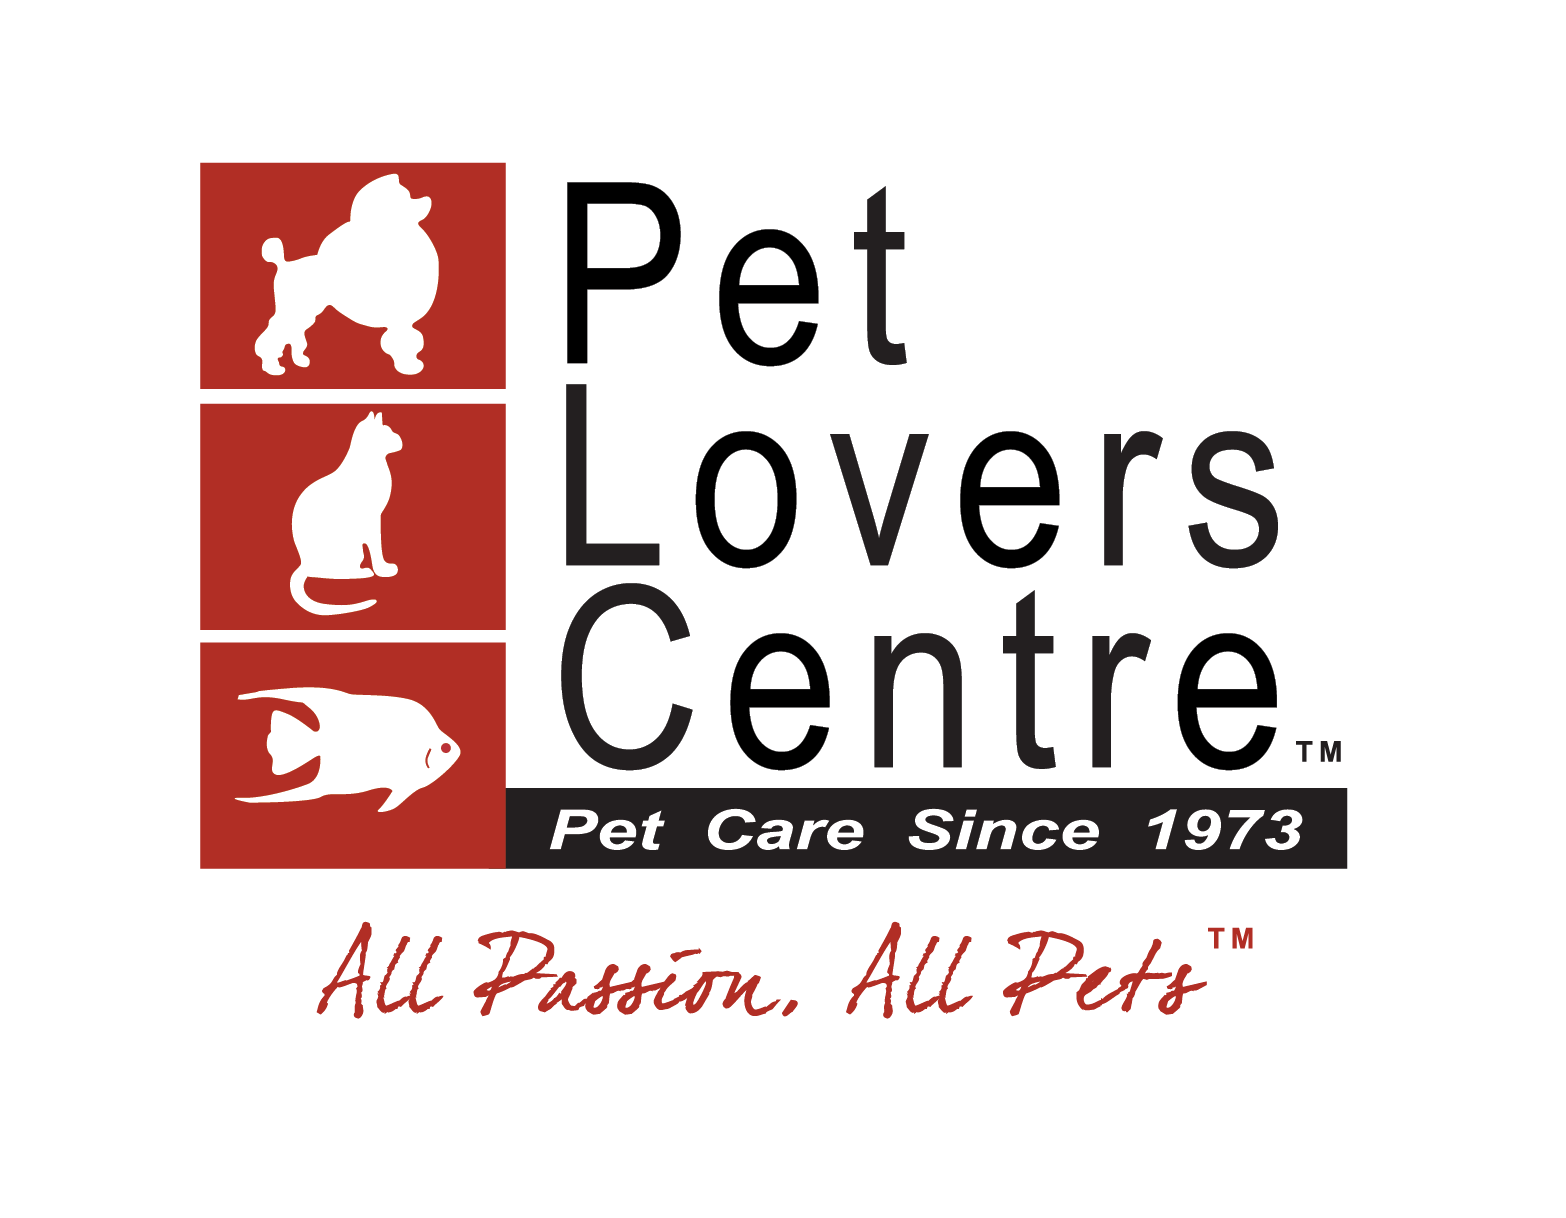 Pet Lovers Centre Help Center home page